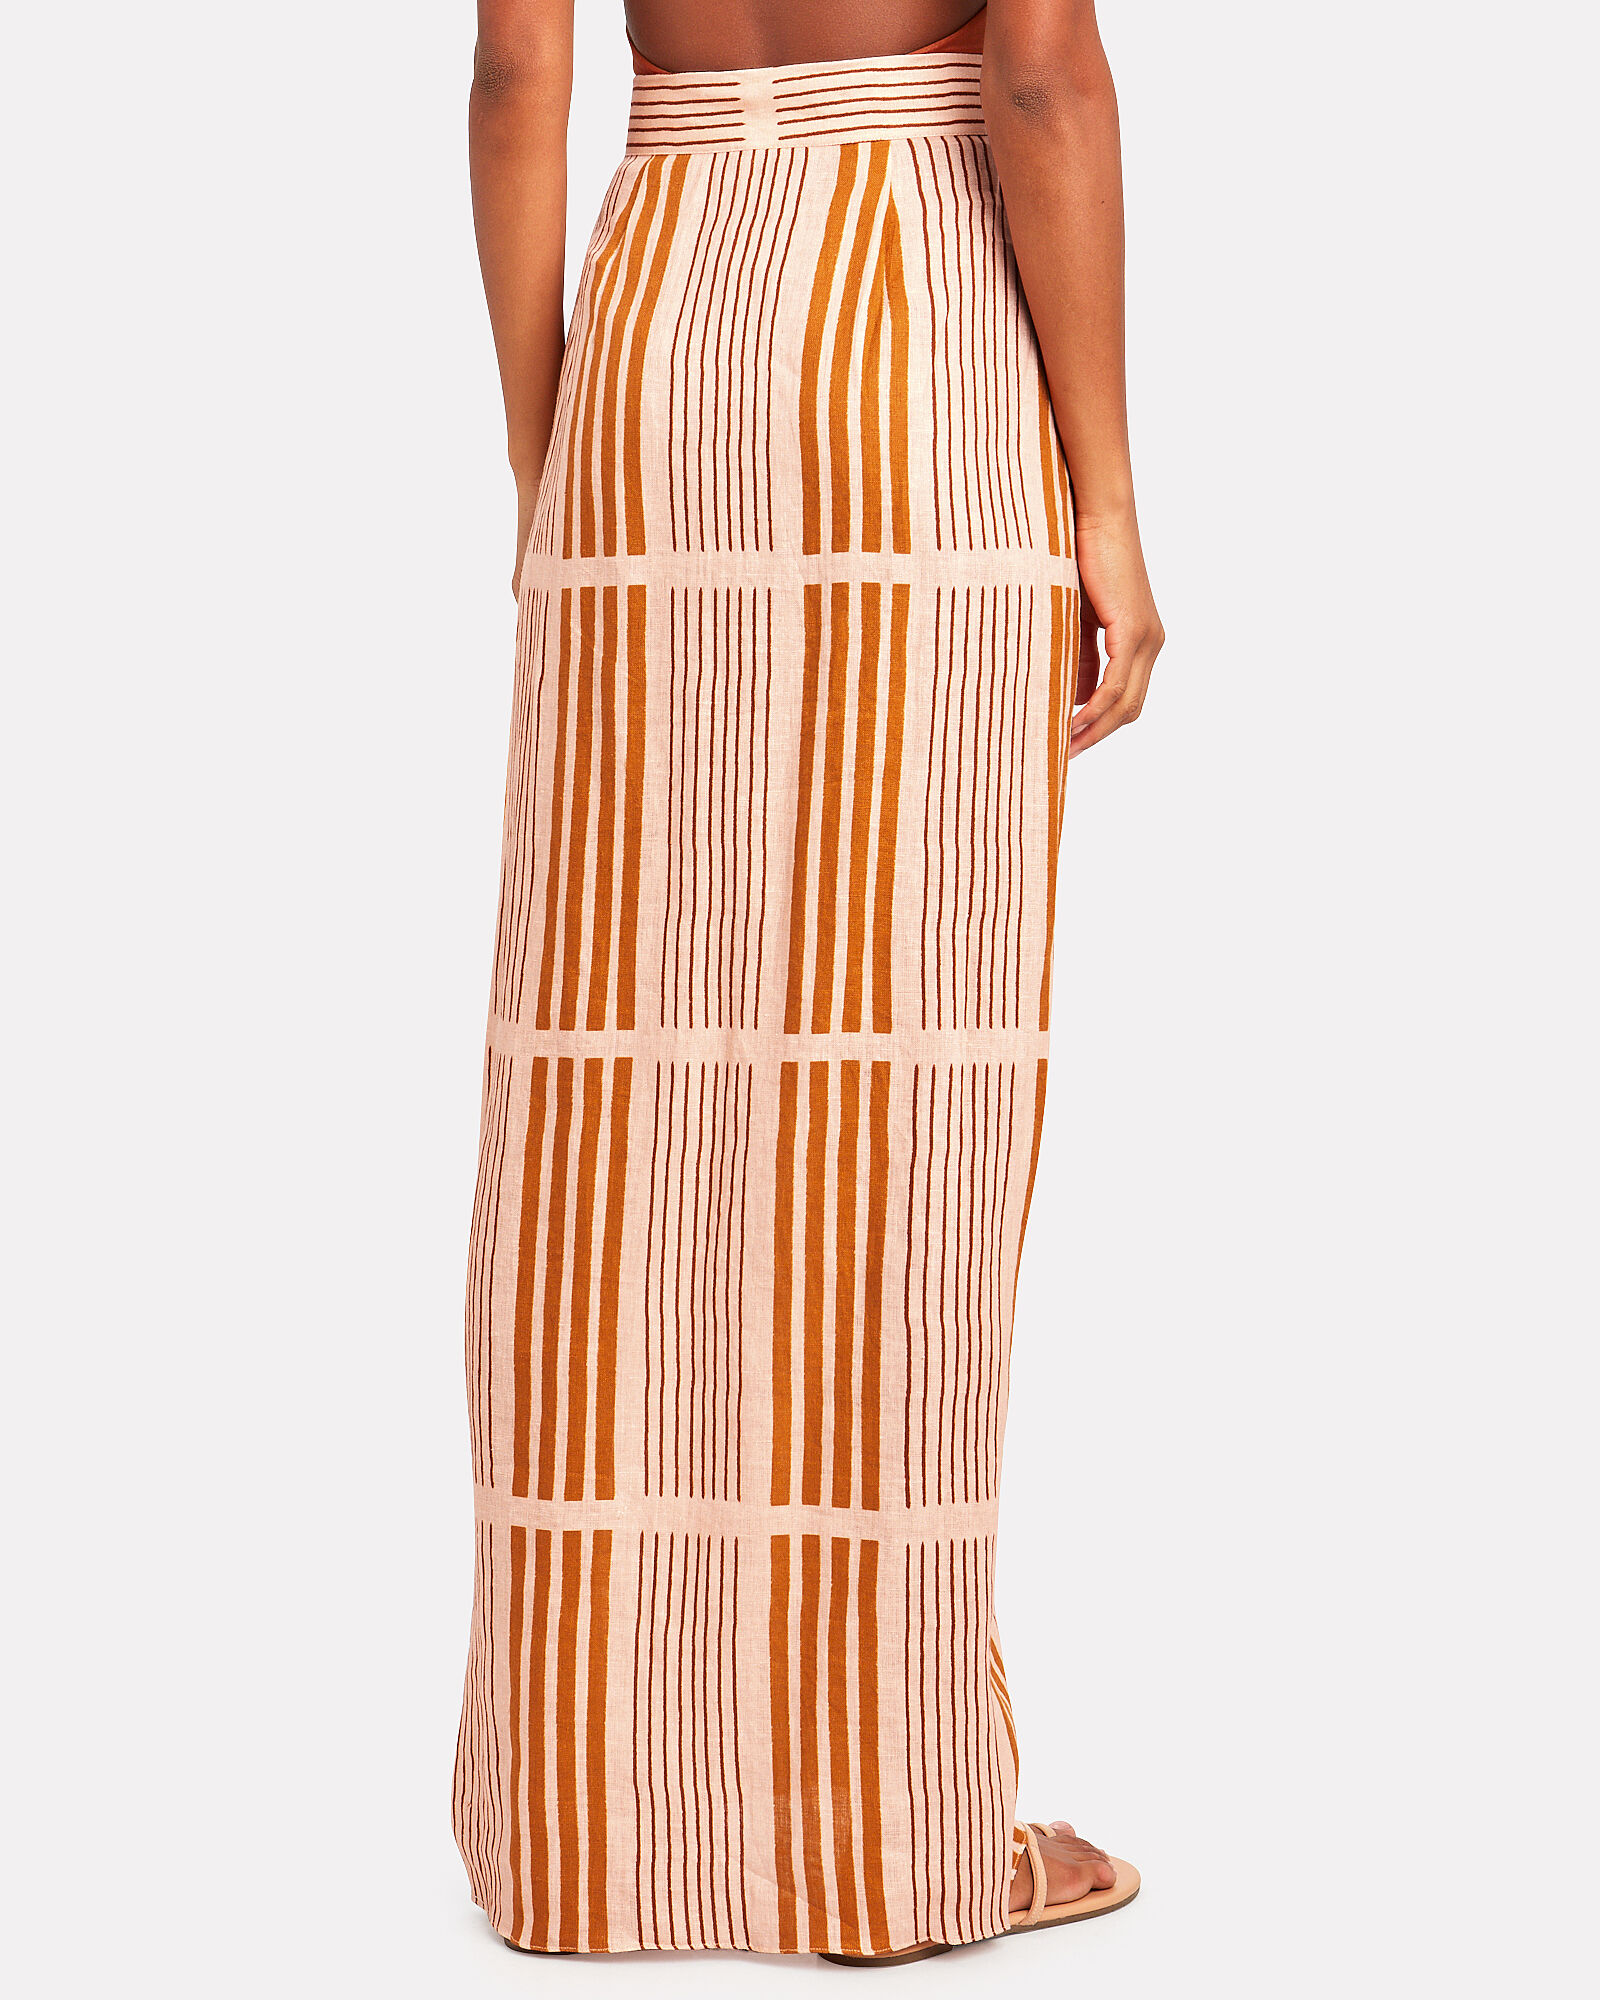 Directional Hypothesis Pareo Skirt, PALE PINK/OCHRE, hi-res